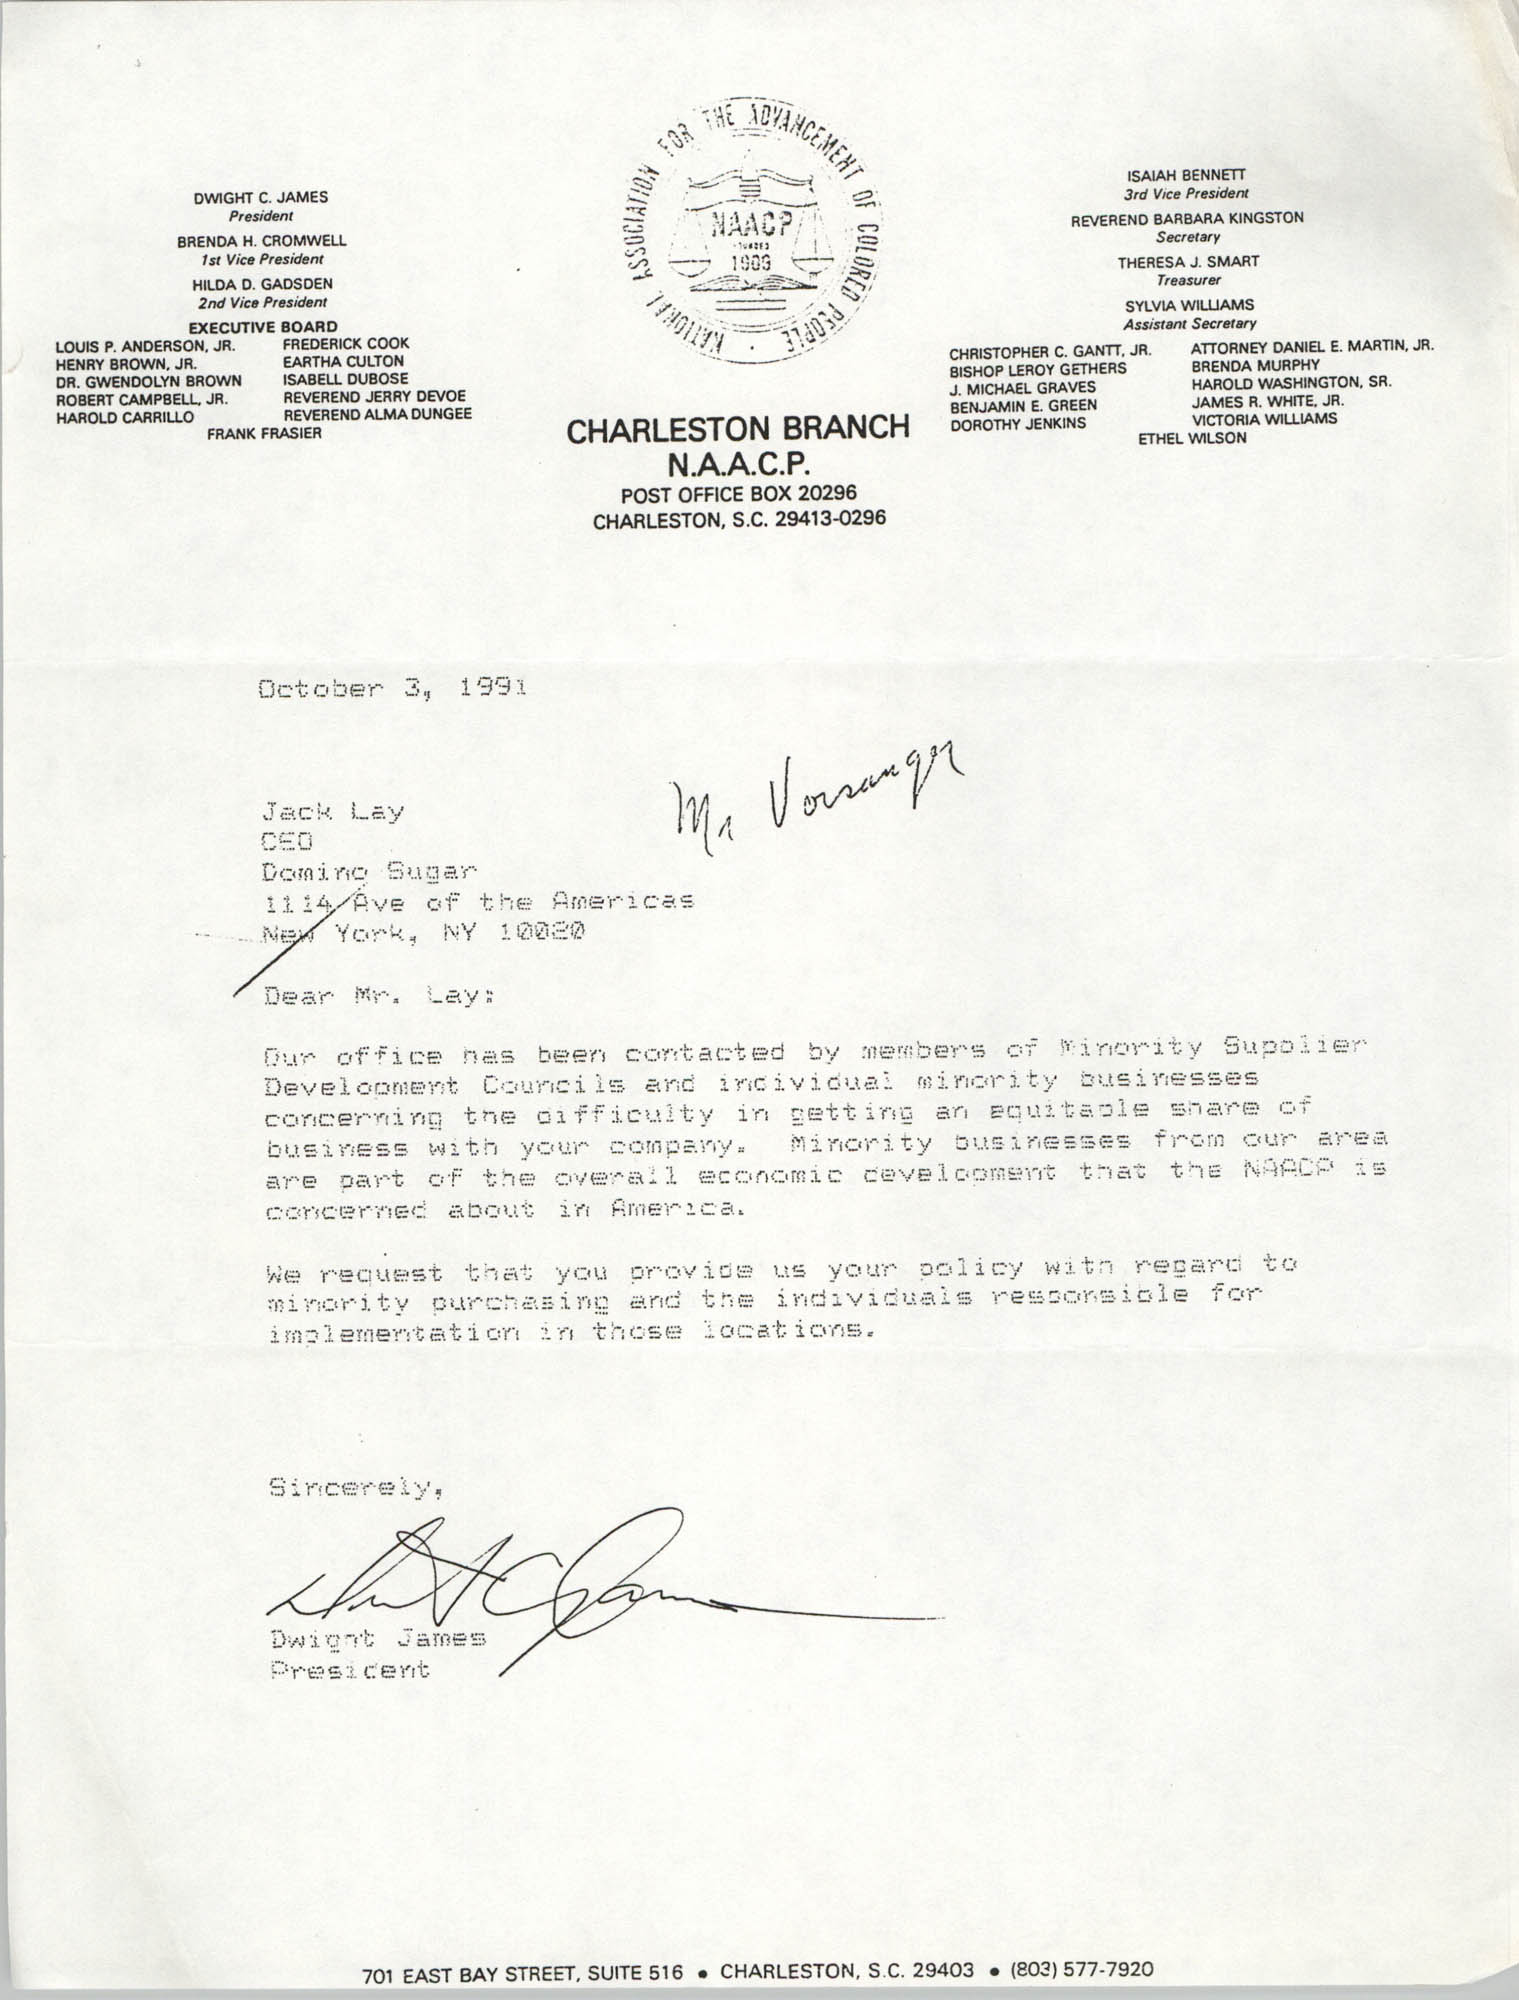 Charleston Branch of the NAACP Memorandum, October 3, 1991